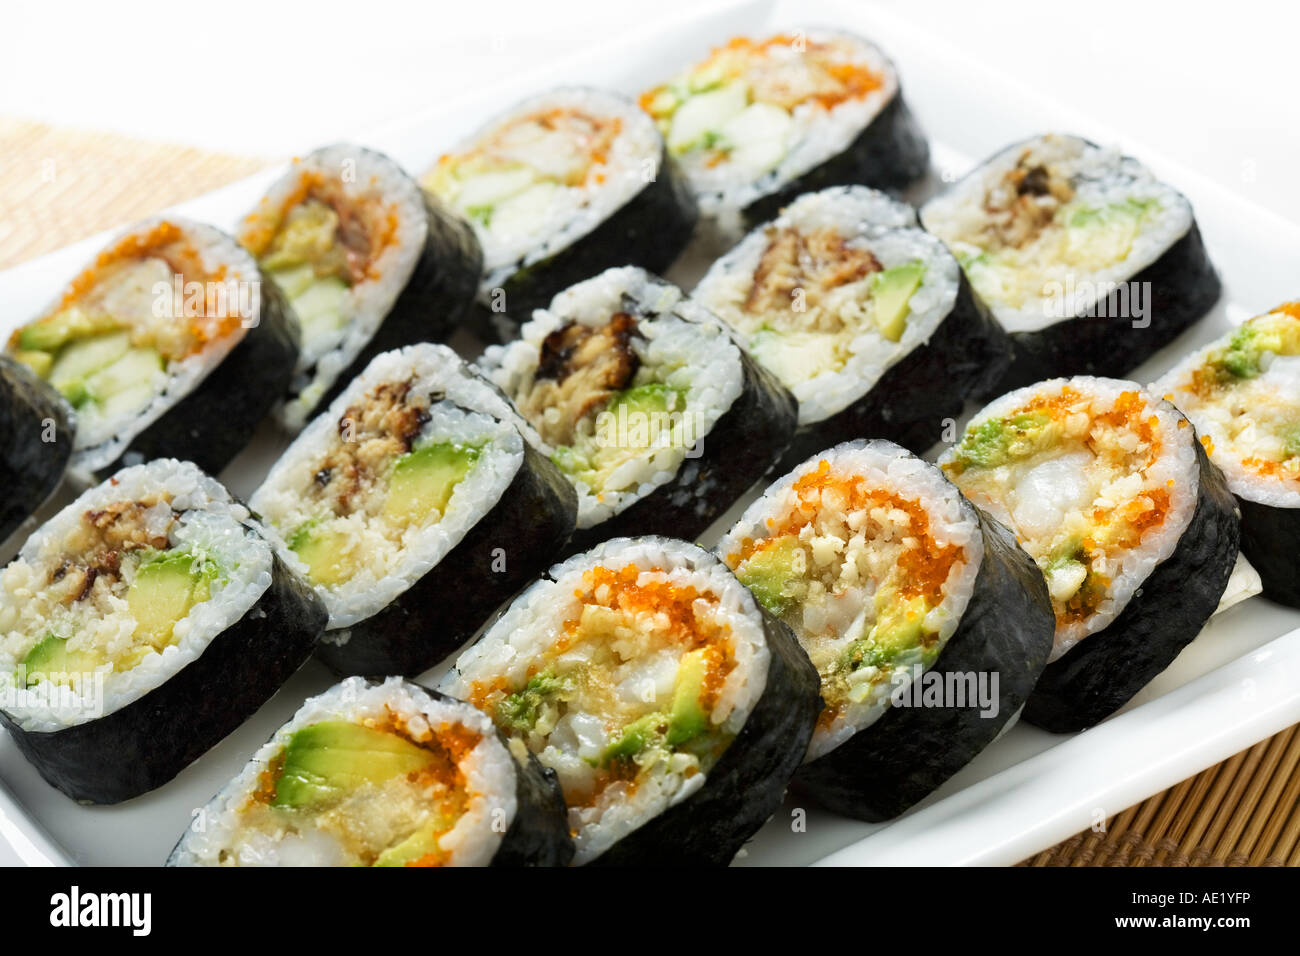 A Japanese dish consisting of sushi rolls on a serving plate. - Stock Image